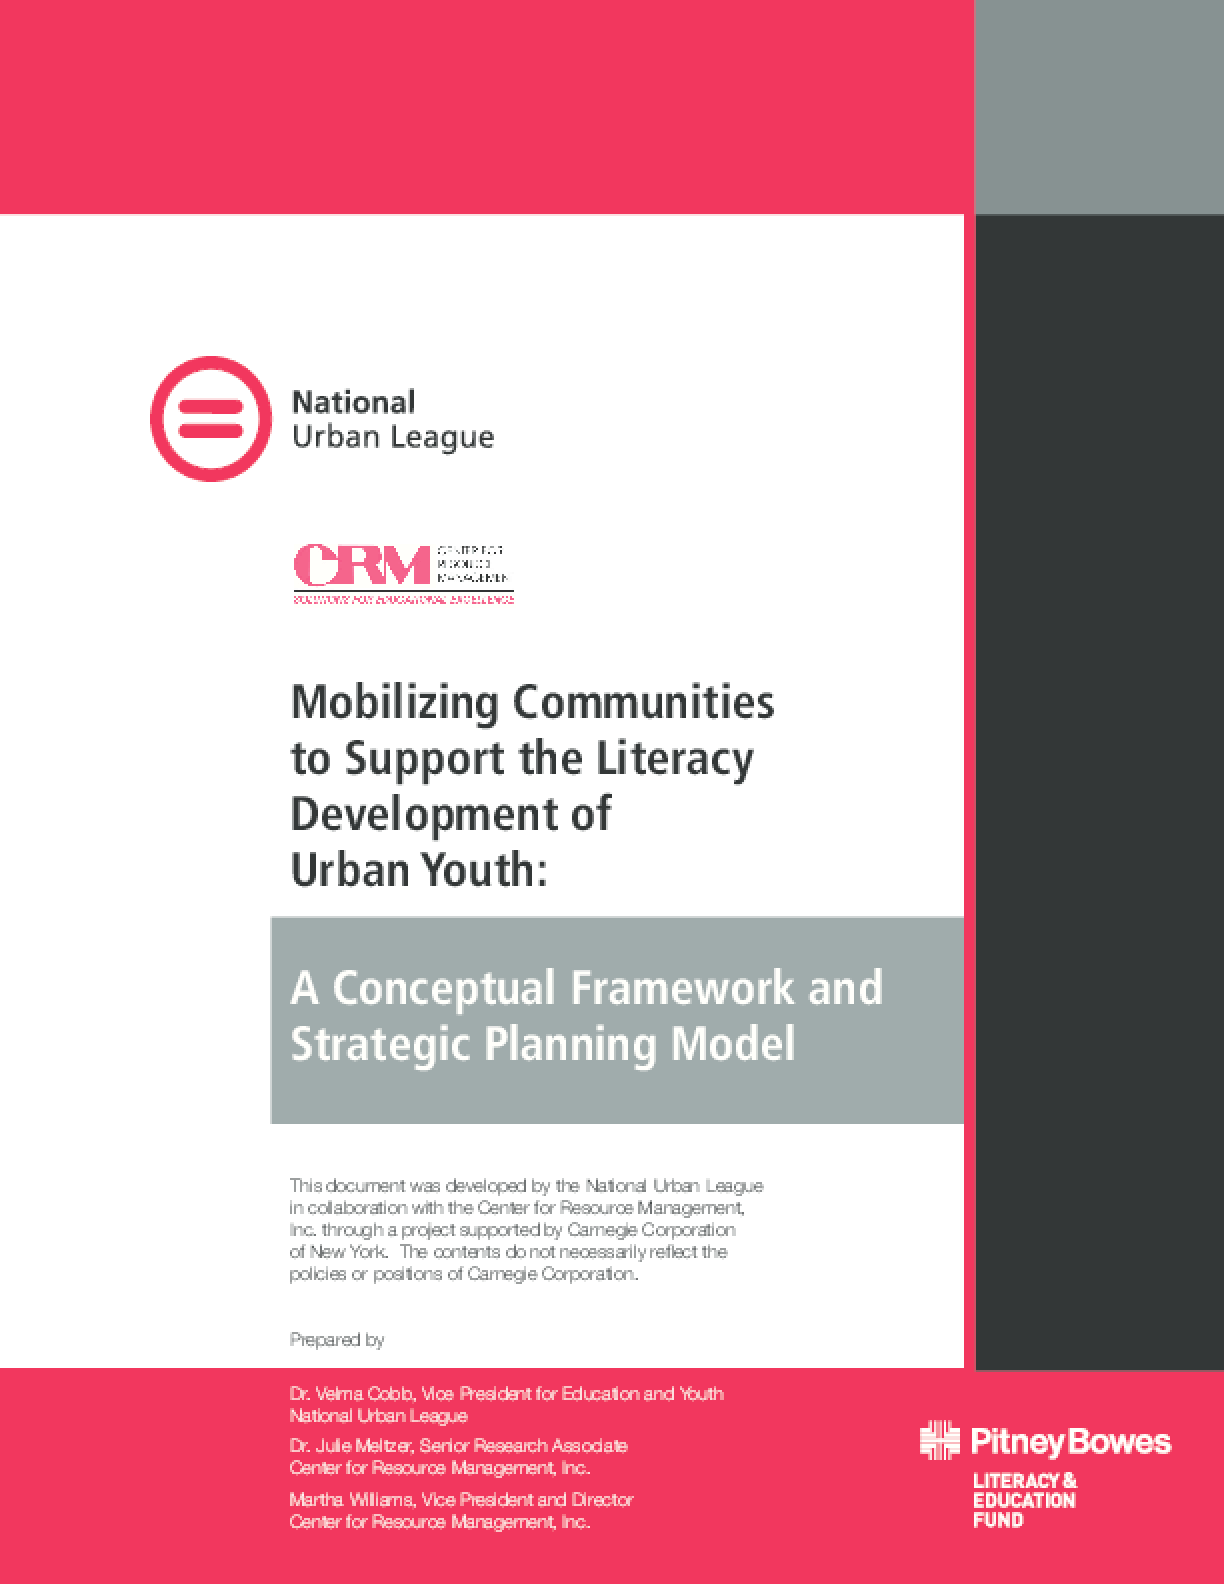 Mobilizing Communities to Support the Literacy Development of Urban Youth: A Conceptual Framework and Strategic Planning Model